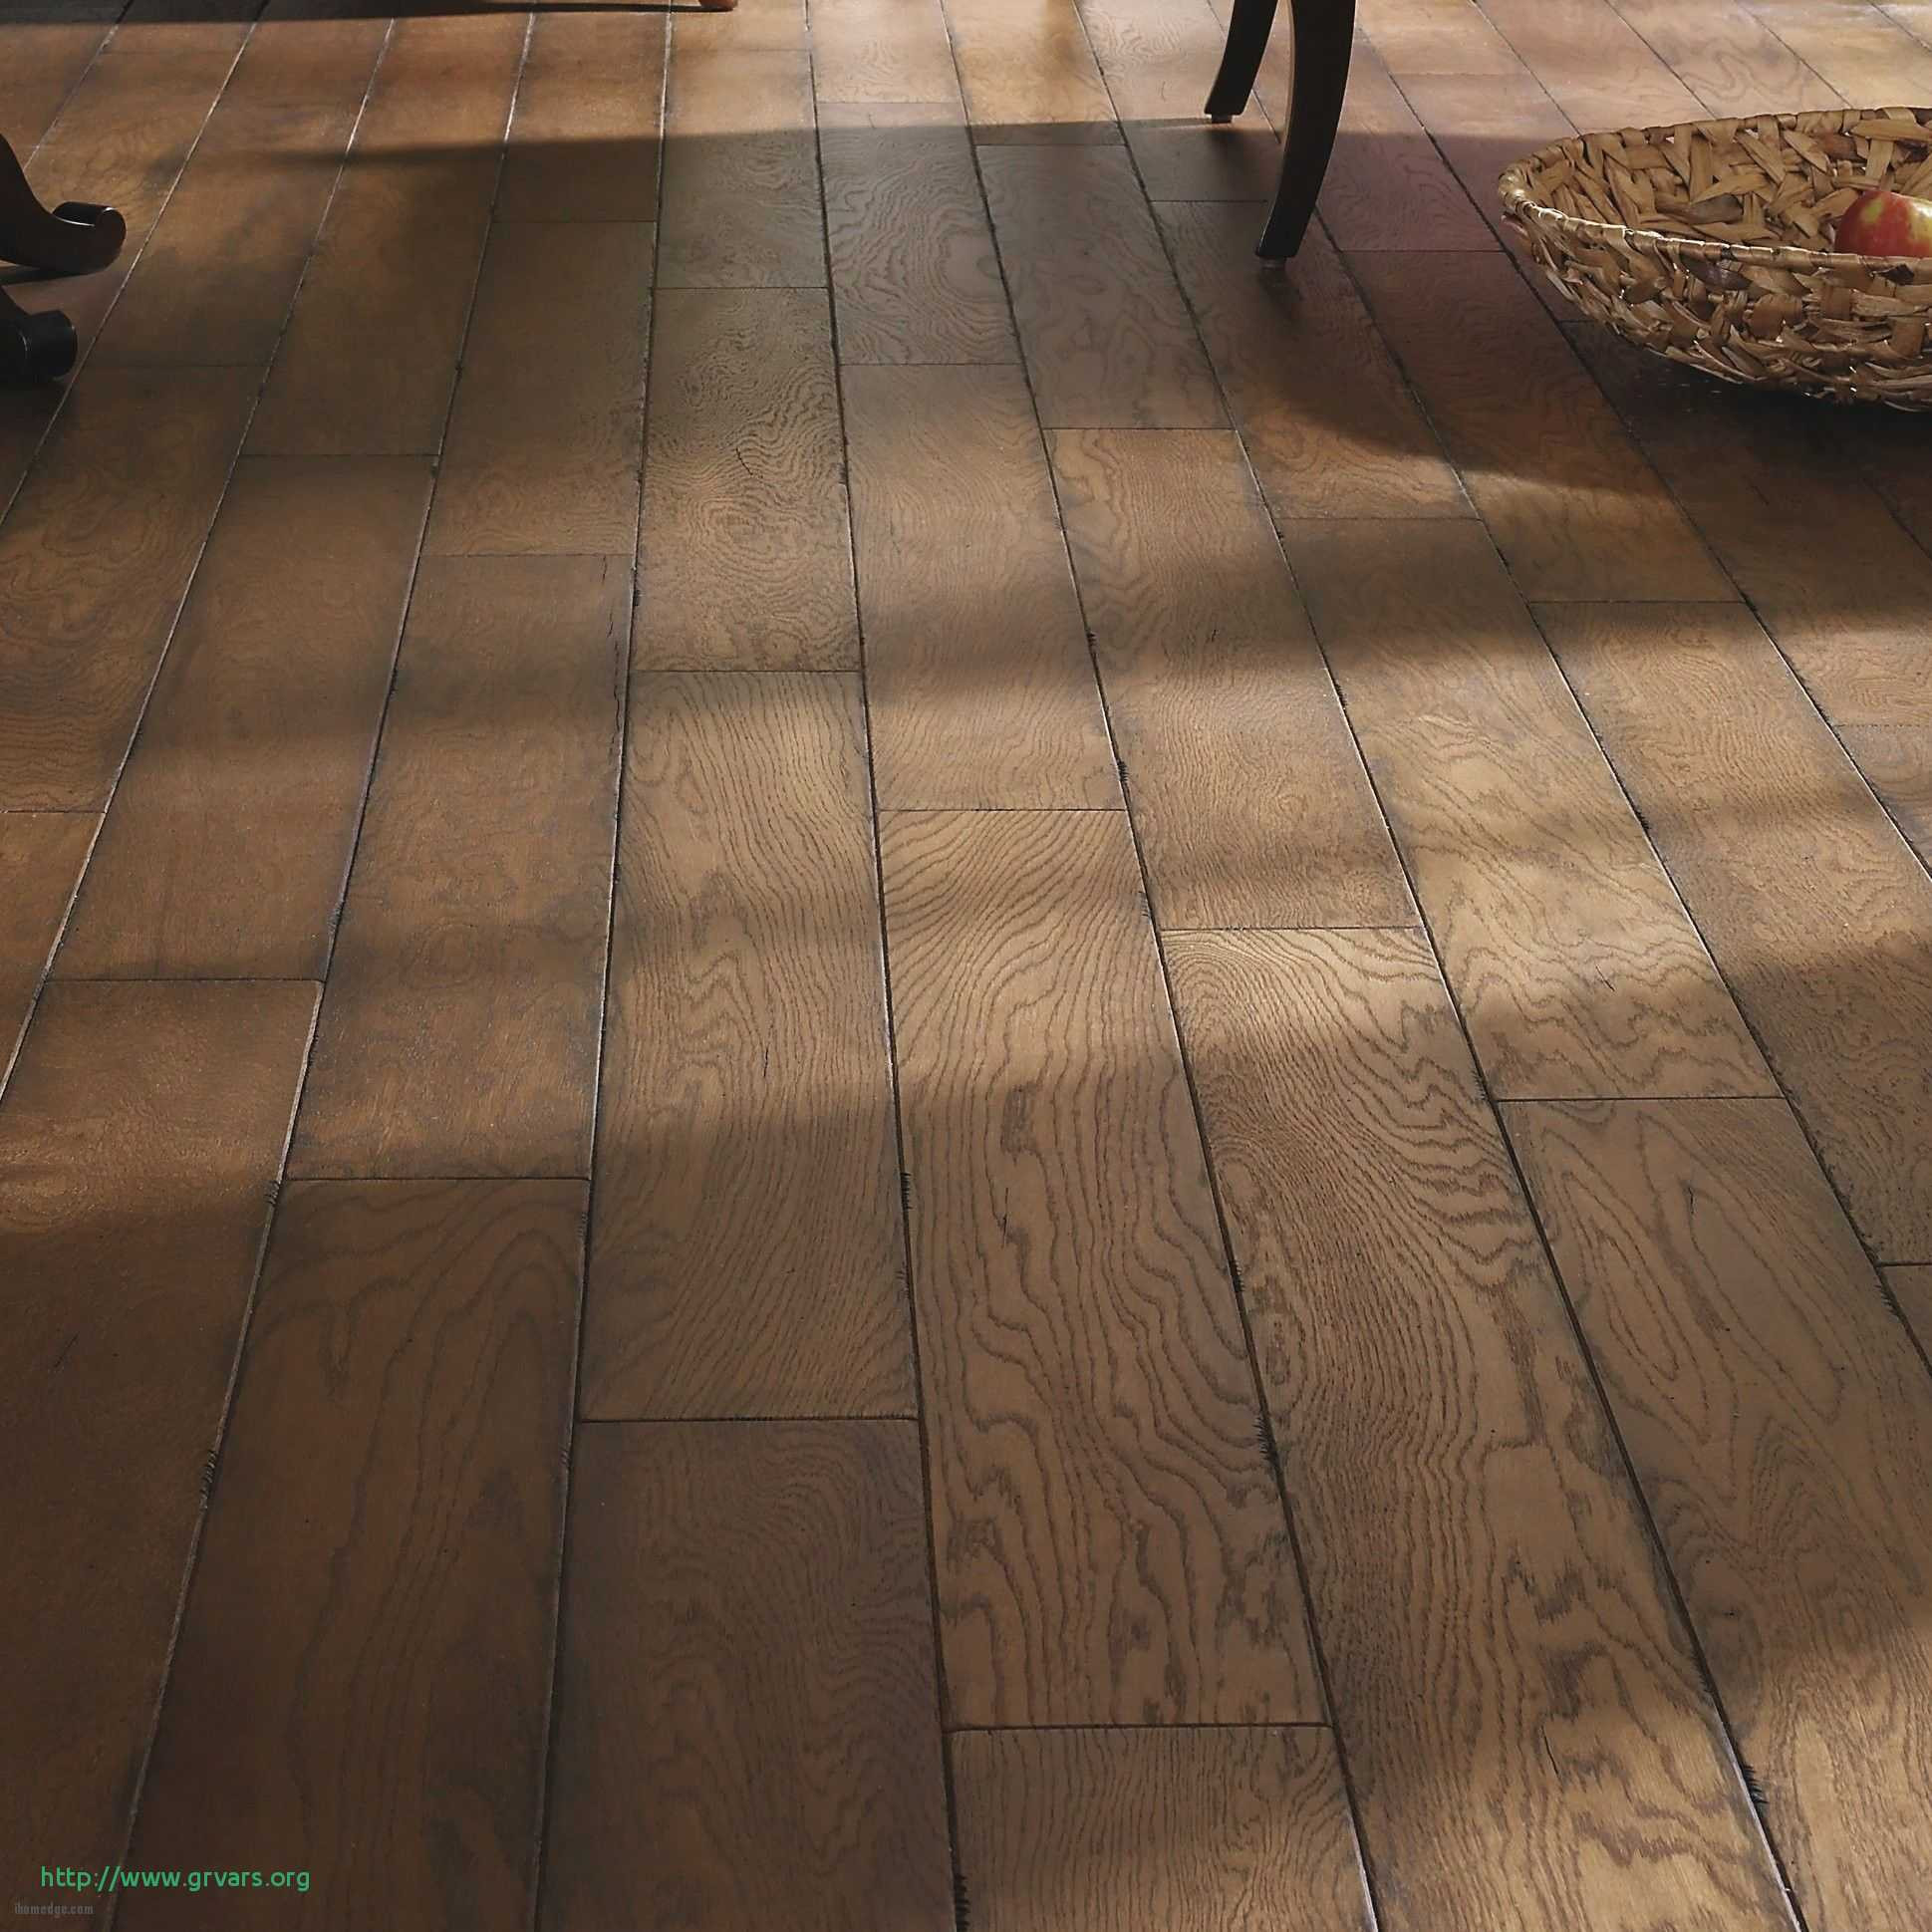 bruce hardwood floor cleaner and wax of 20 impressionnant where to buy bruce hardwood floor cleaner ideas blog pertaining to cool lovely white oak hardwood flooring easoon usa 5 engineered white oak hardwood flooring in ar